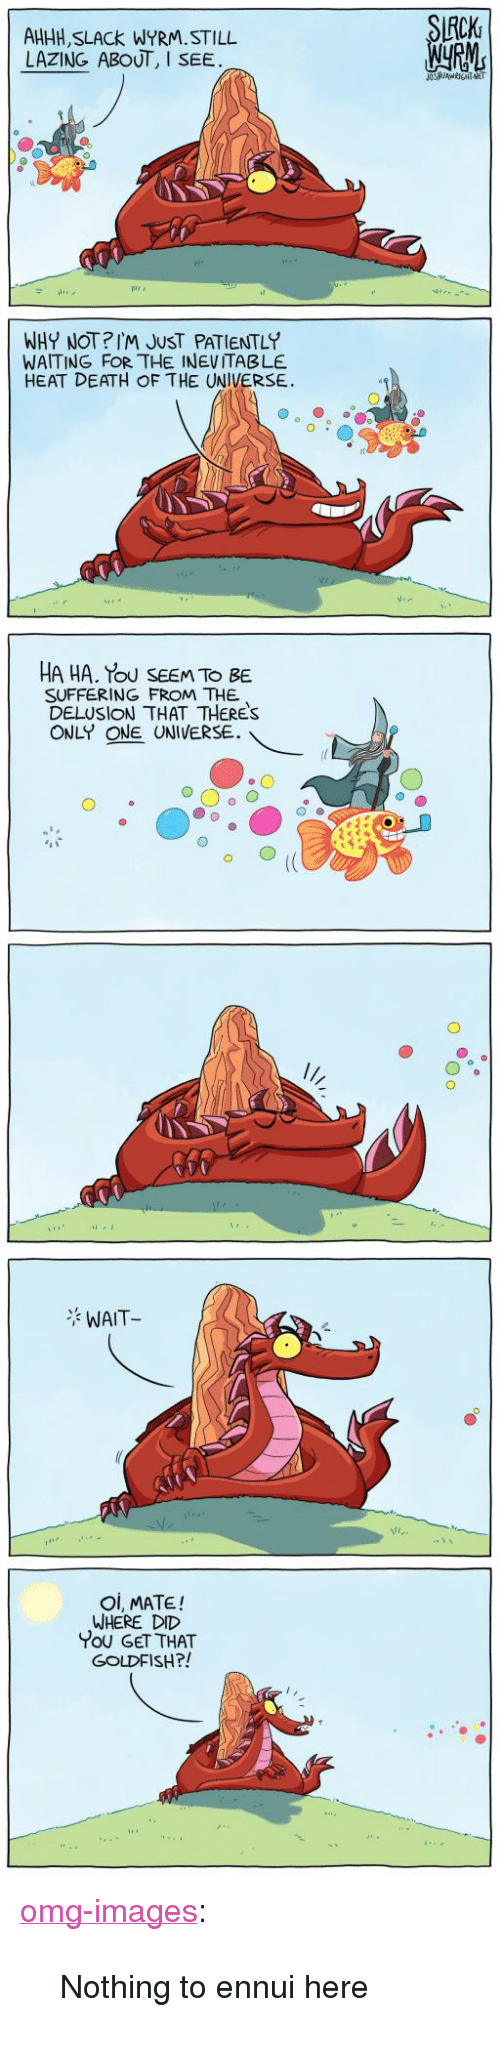 "Goldfish, Omg, and Tumblr: CK  AHHH, SLACk WYRM.STILL  LAZING ABOUT, I SEE  WHY NOT?IM JUST PATIENTLY  WAITING FOR THE INEVITABLE  HEAT DEATH OF THE UNIVERSE.  HA HA. Tou SEEM TO BE  SUFFERING FROM THE  DELUSION THAT THERES  ONLY ONE UNIVERSE.  WAIT  Oi, MATE!  WHERE DID  You GET THAT  GOLDFISH?! <p><a href=""https://omg-images.tumblr.com/post/170444125697/nothing-to-ennui-here"" class=""tumblr_blog"">omg-images</a>:</p>  <blockquote><p>Nothing to ennui here</p></blockquote>"